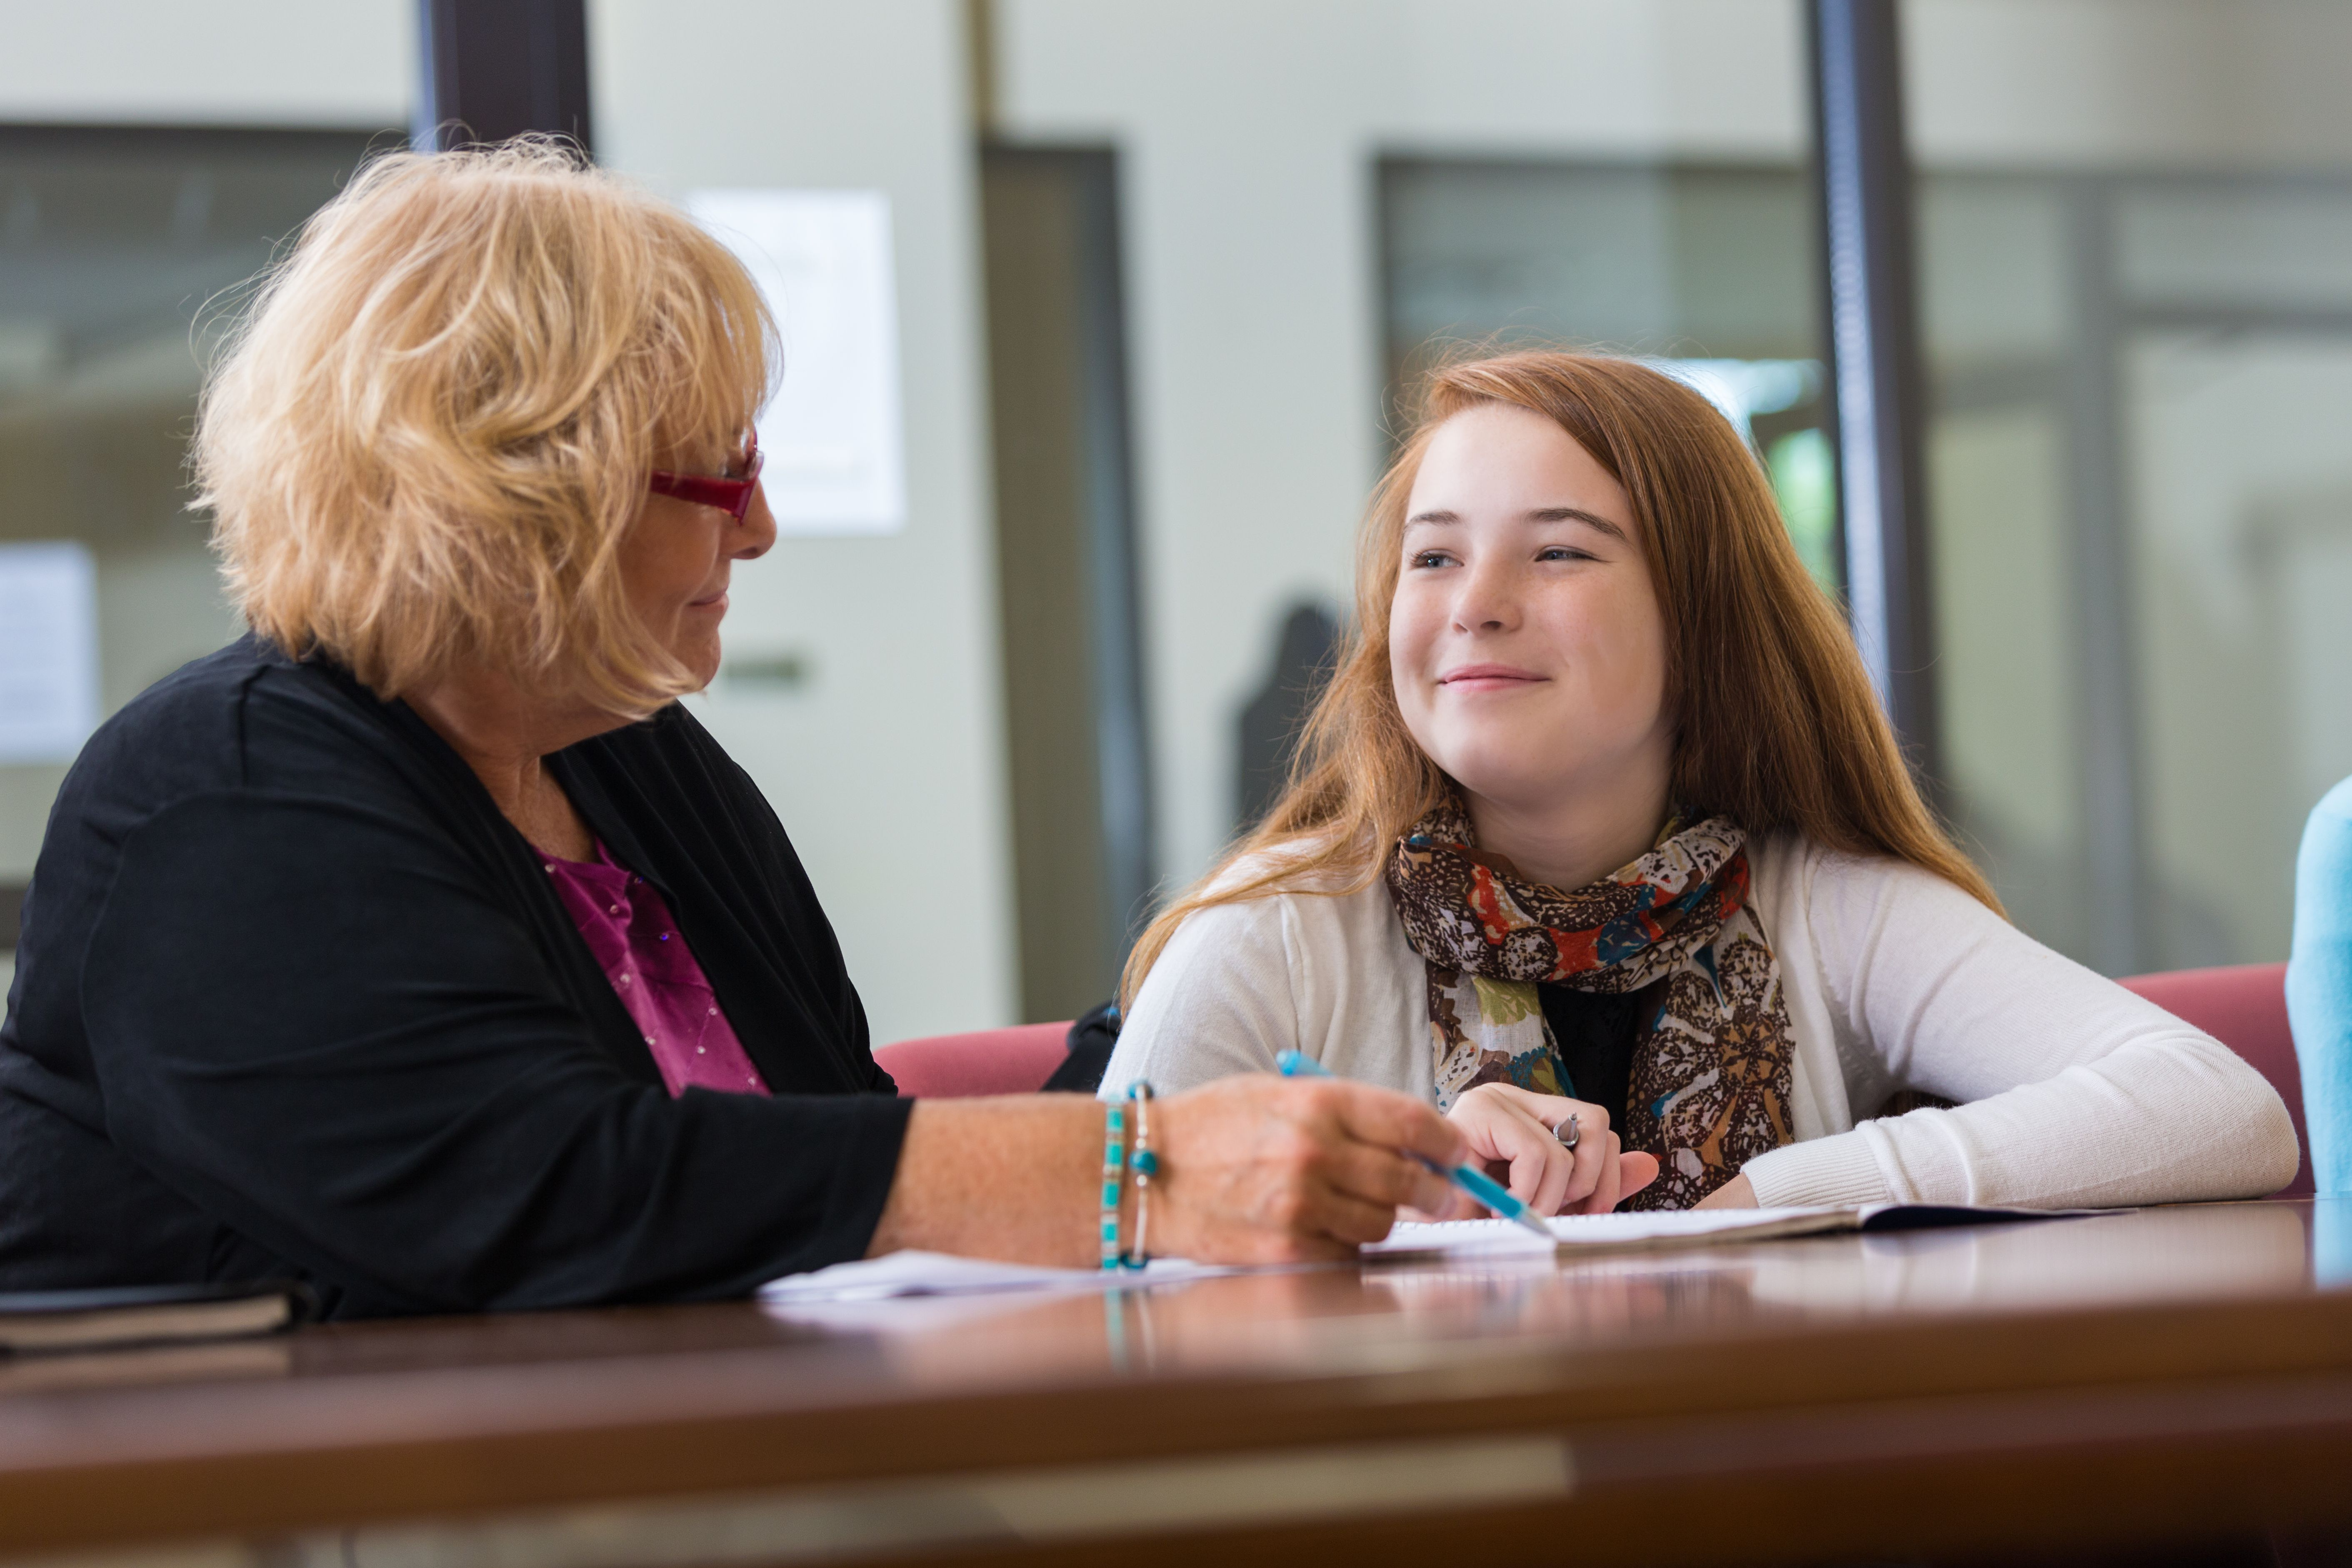 Preteen student meeting with school counselor or therapist